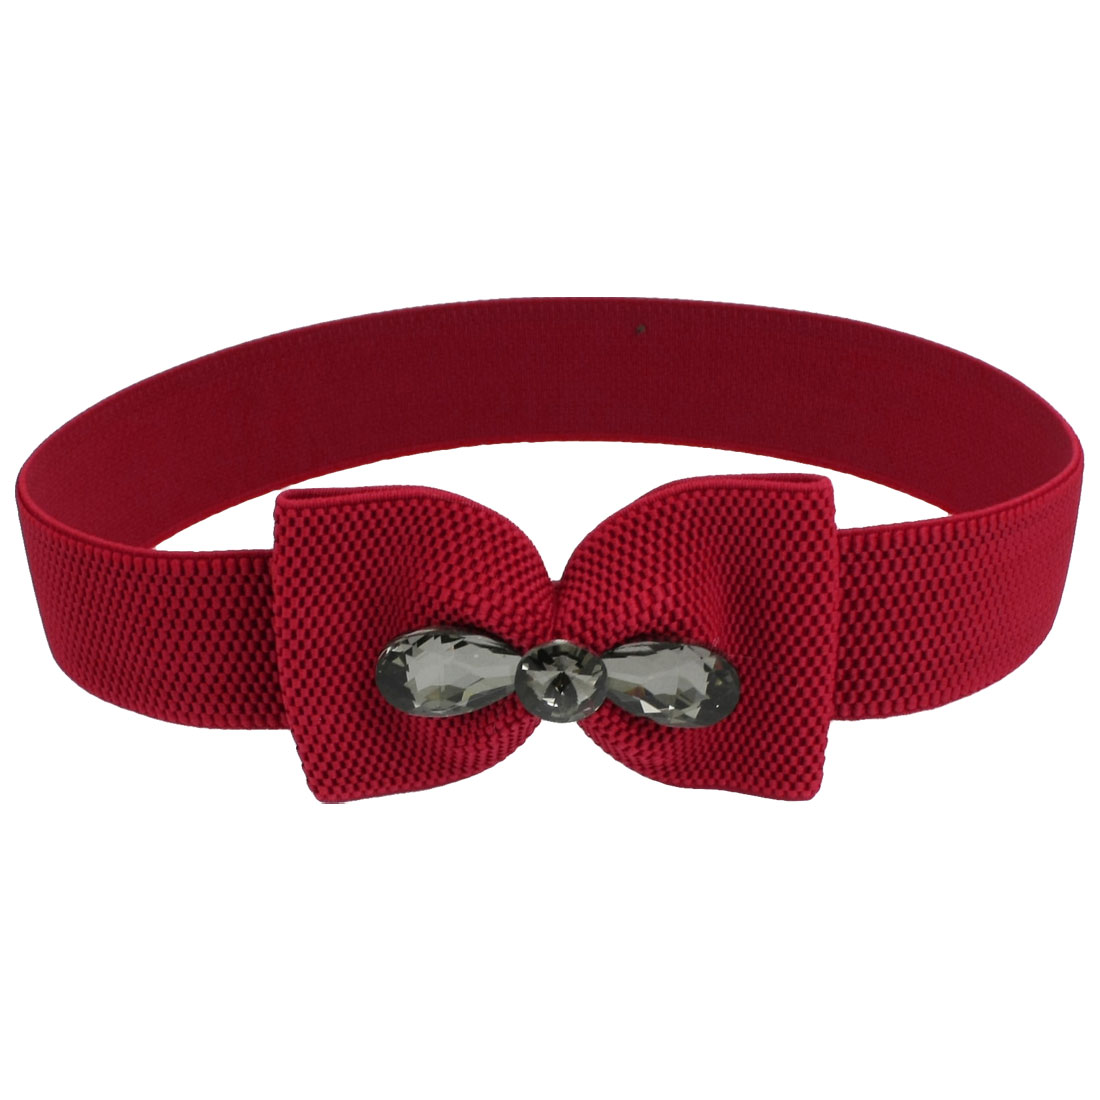 Lady Press Button Bowknot Buckle Waist Belt Corset Band Cinch Red